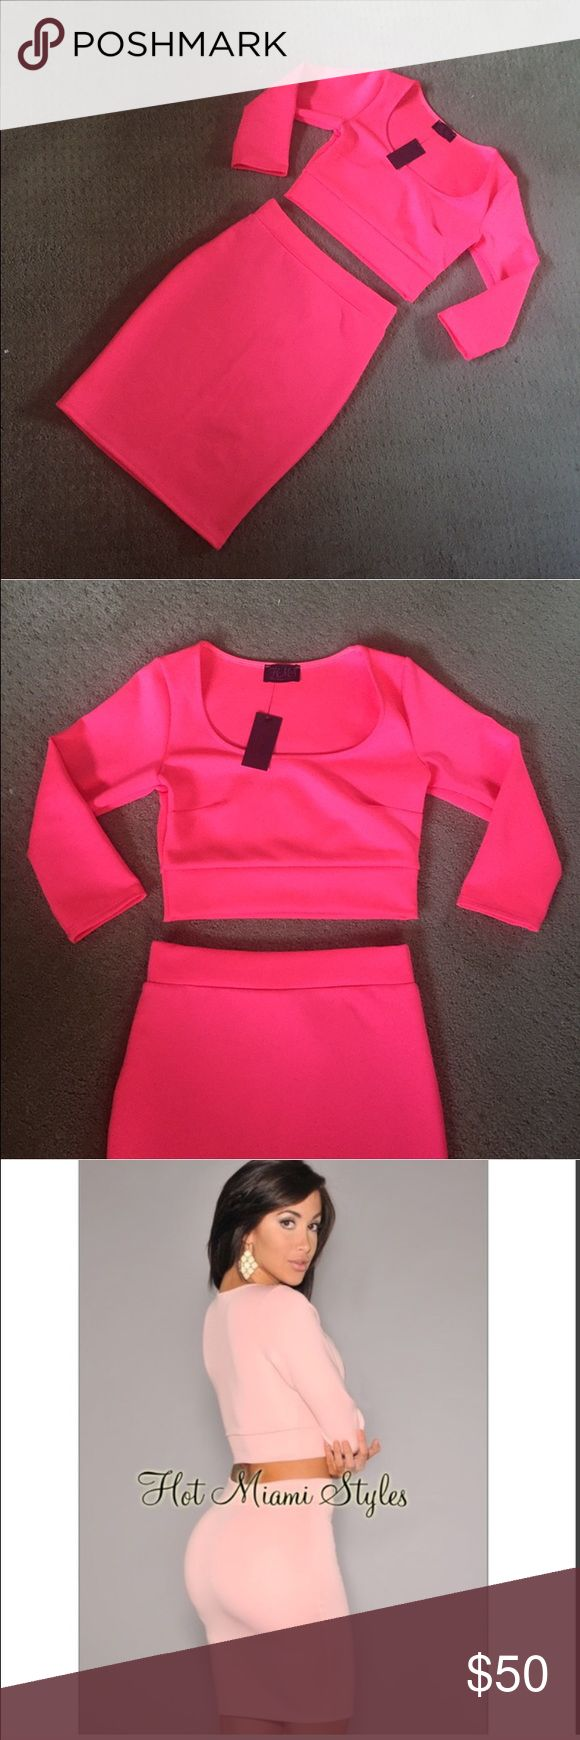 New Neon Hot Pink Crop Top Skirt Set Small New. Bright neon hot pink color. Crop top and skirt. Has stretch. Size small. This can be worn as a Midi if you're shorter. And more above the knee for taller girls. Just depends on how high you'd like to wear it. Looks good high waist or low/normal. No trades. ***NOT BEBE*** used fof exposure bebe Skirts Skirt Sets